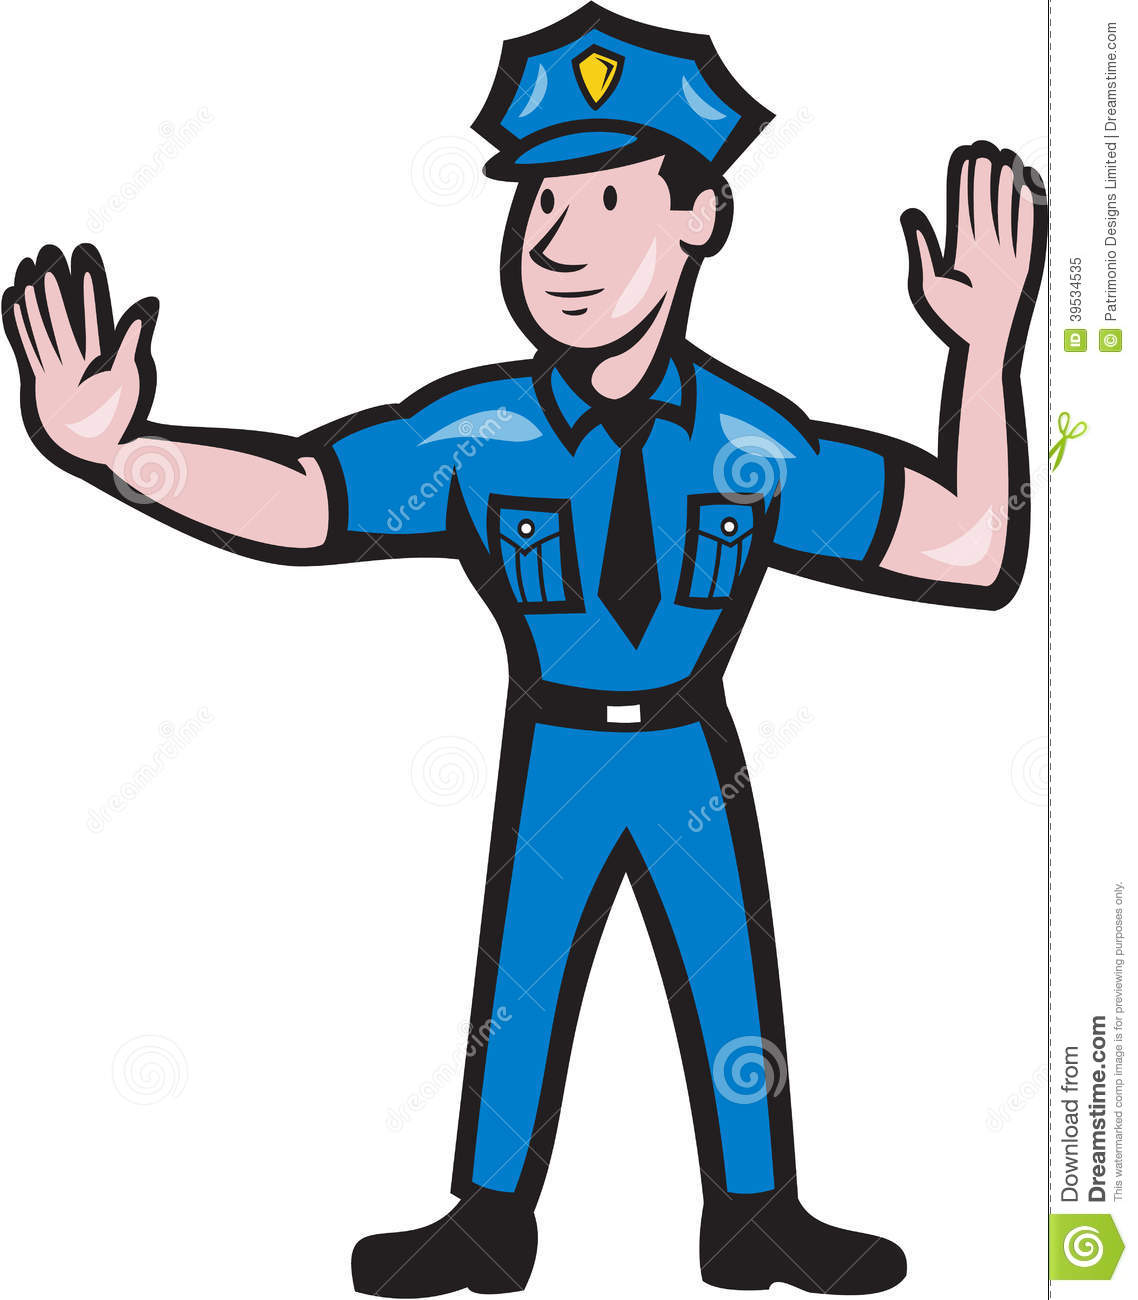 Police Officer Wallpaper   Clipart Panda   Free Clipart Images